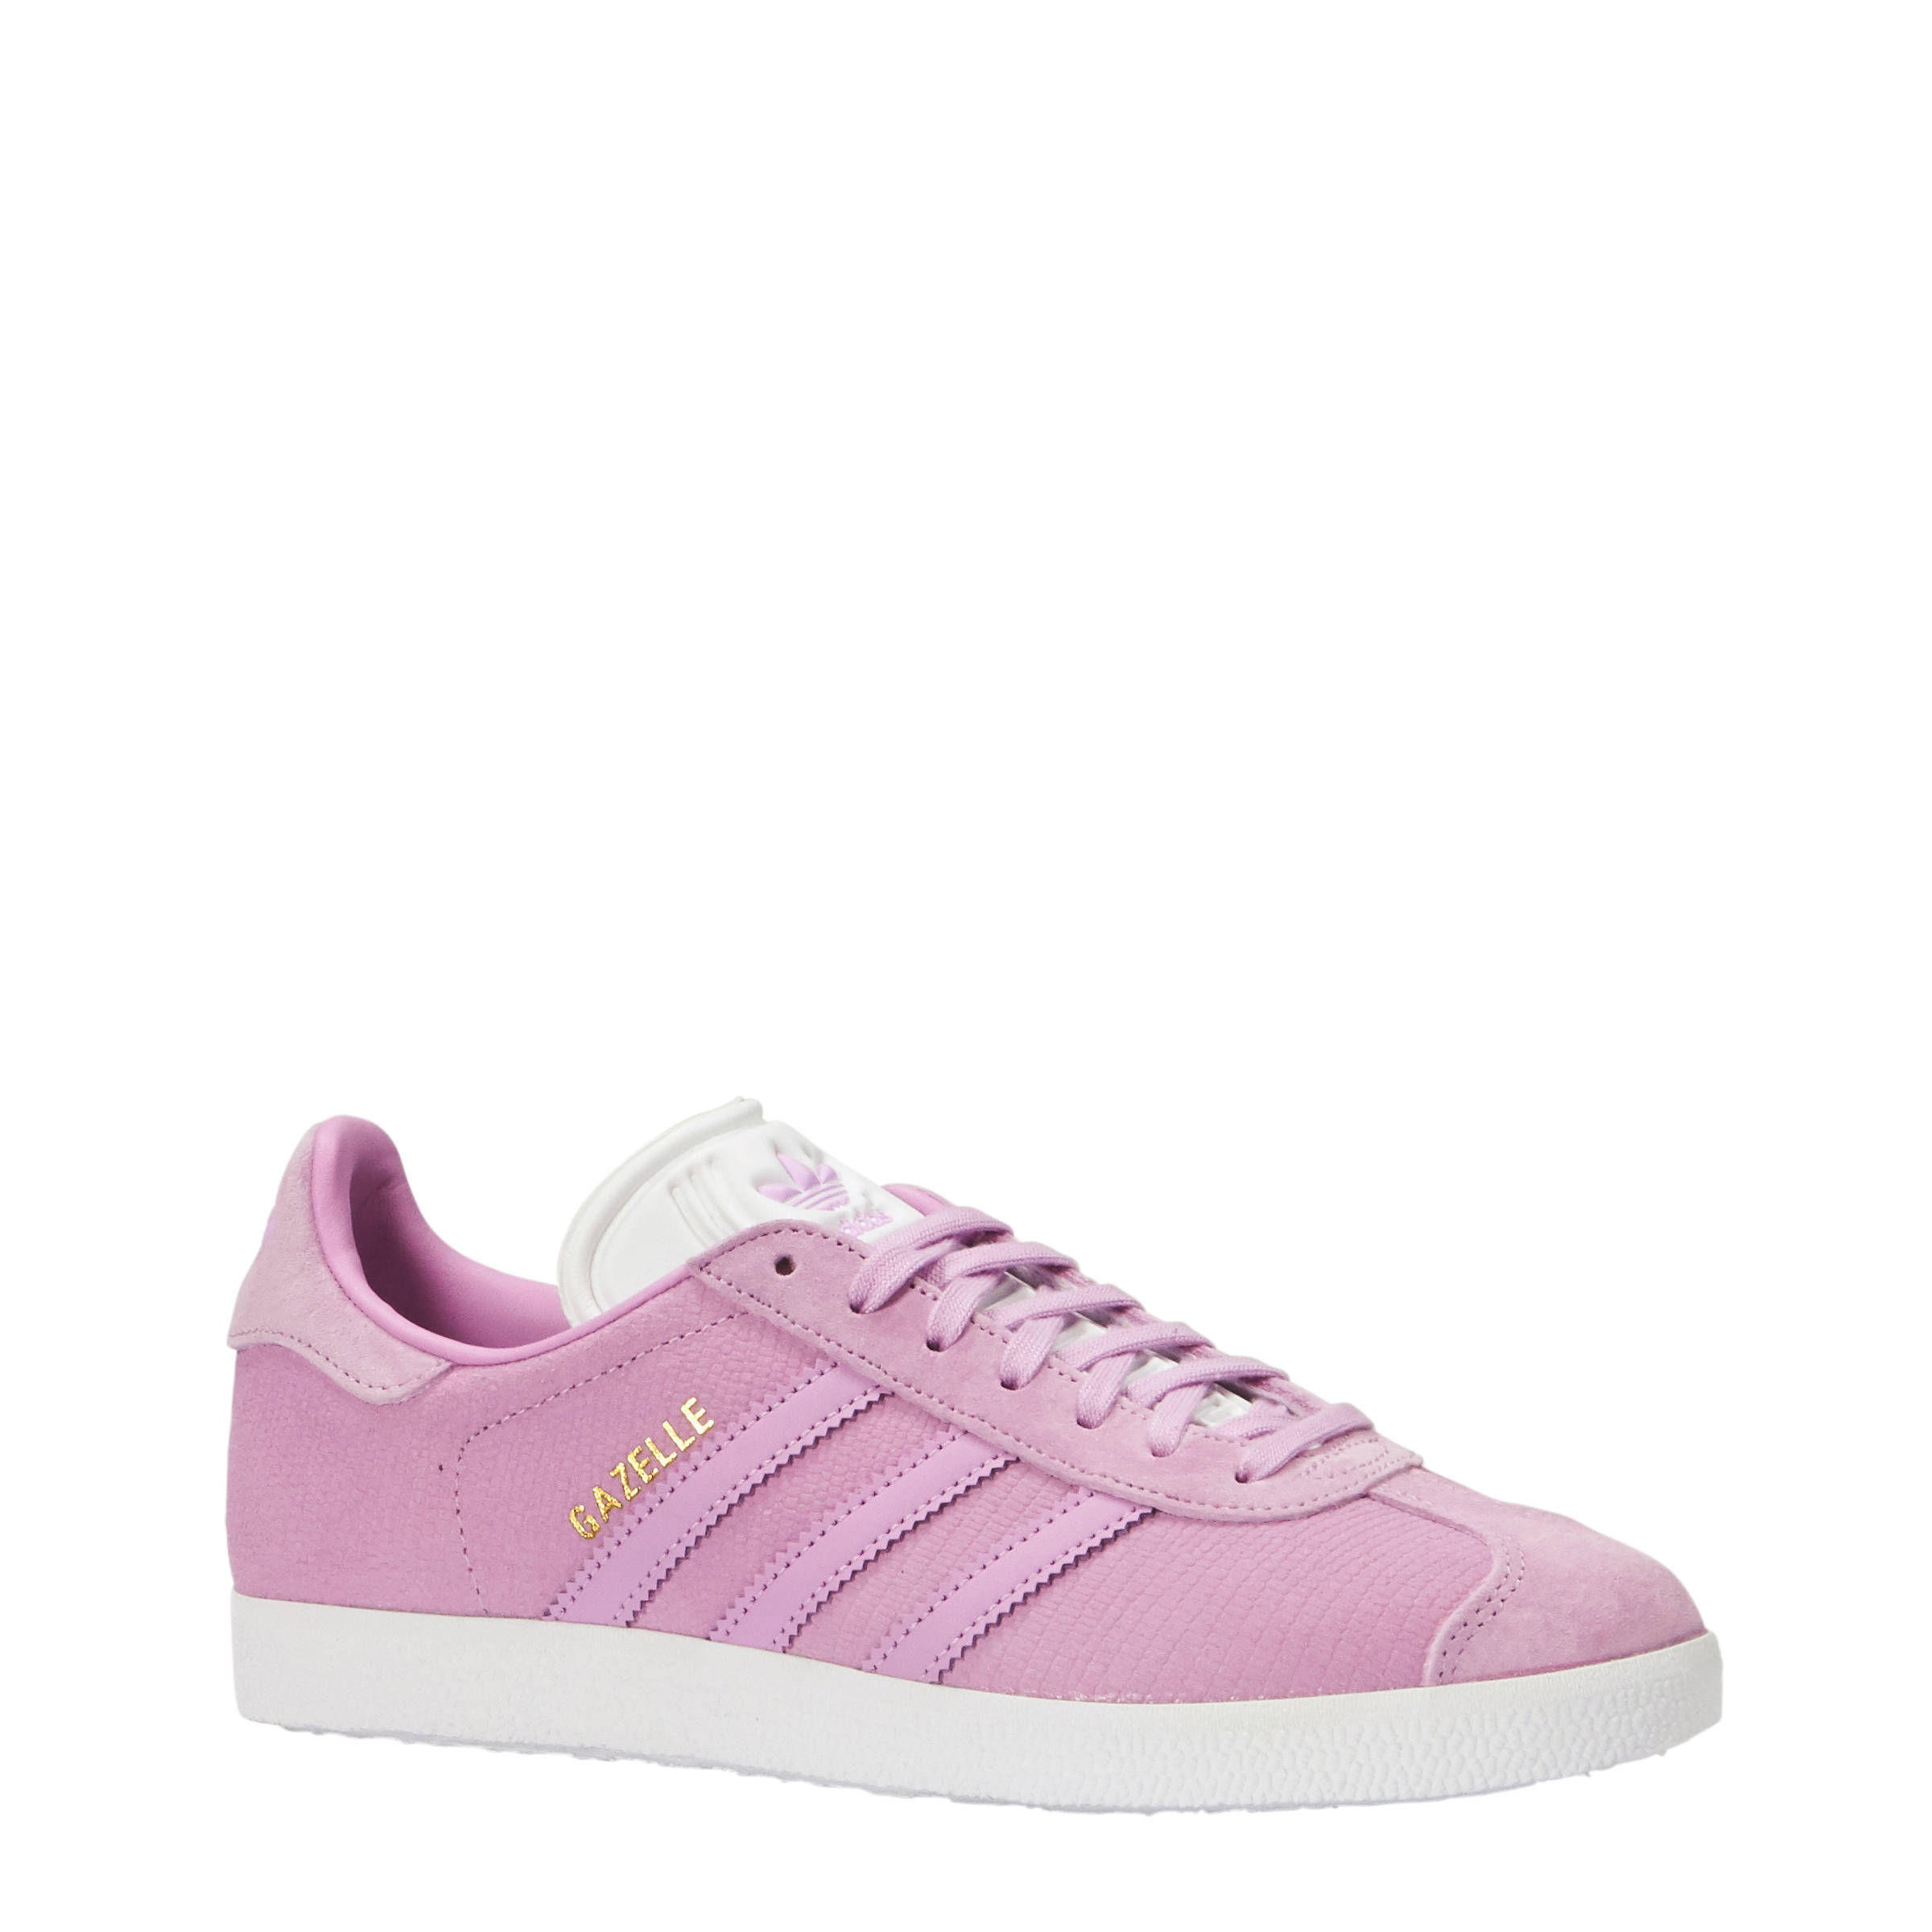 6d24c8d326a adidas originals Gazelle sneakers | wehkamp